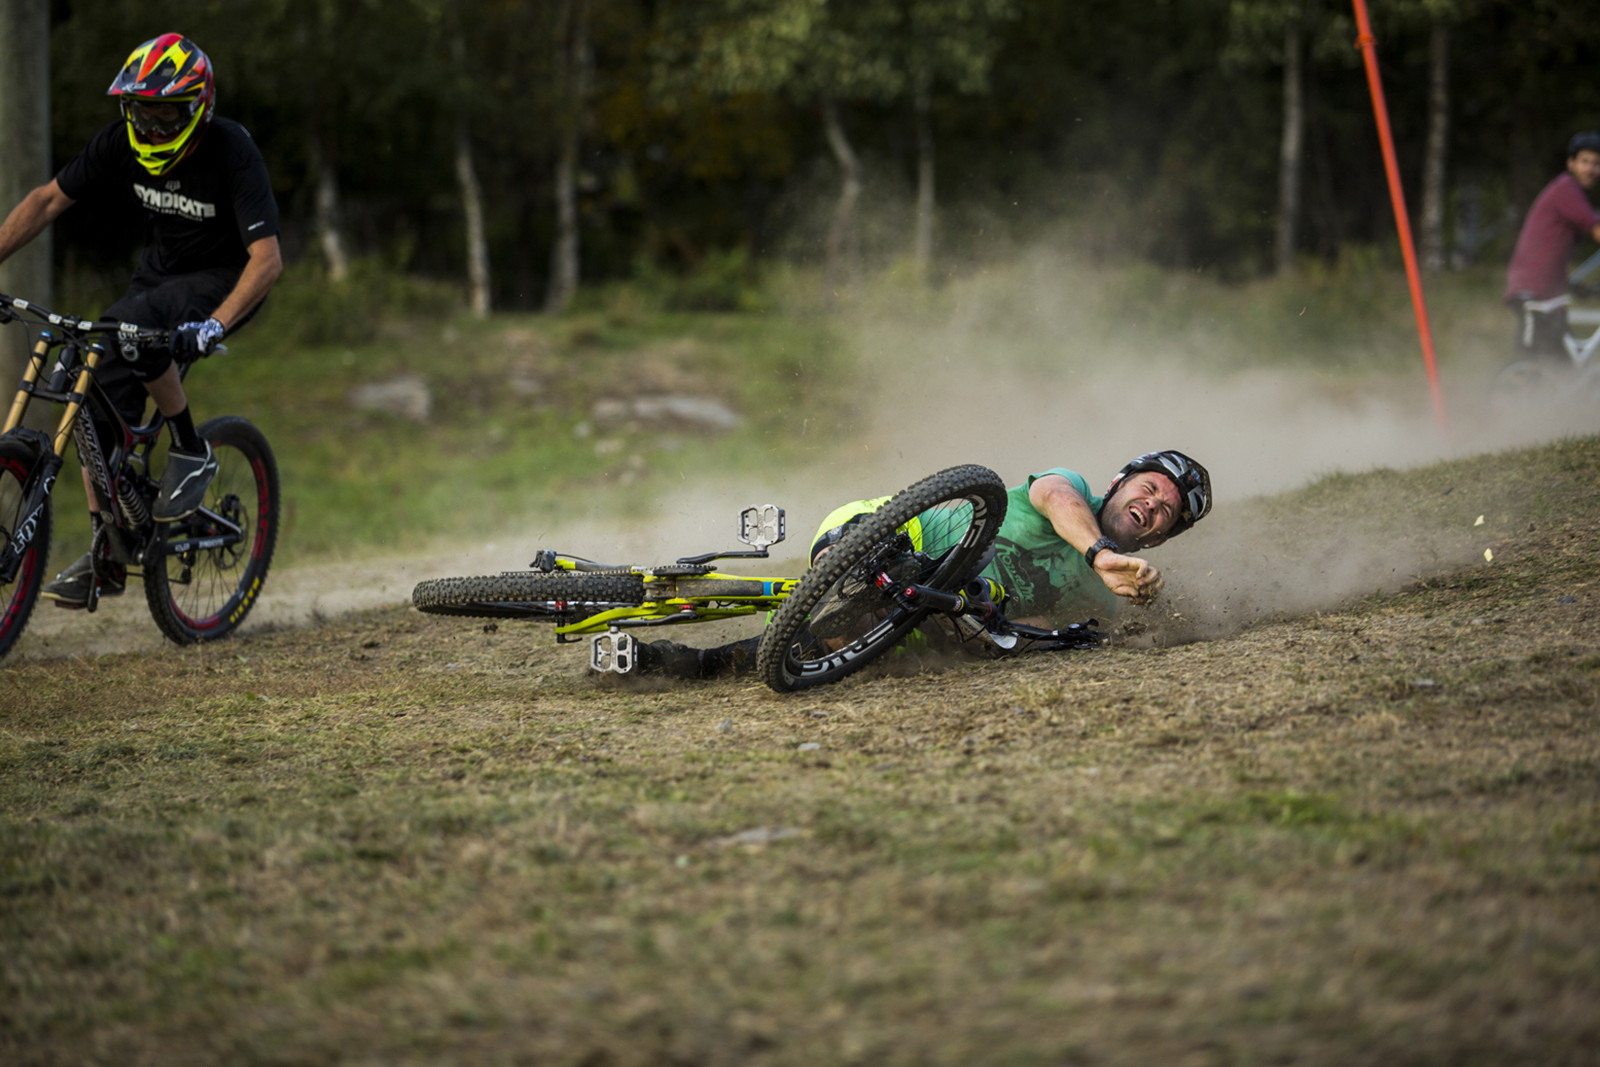 Sven Goes Down at 2013 Industry World Champs - Has-Beens vs. Wannabes! Industry World Champs Race at Hafjell - Mountain Biking Pictures - Vital MTB